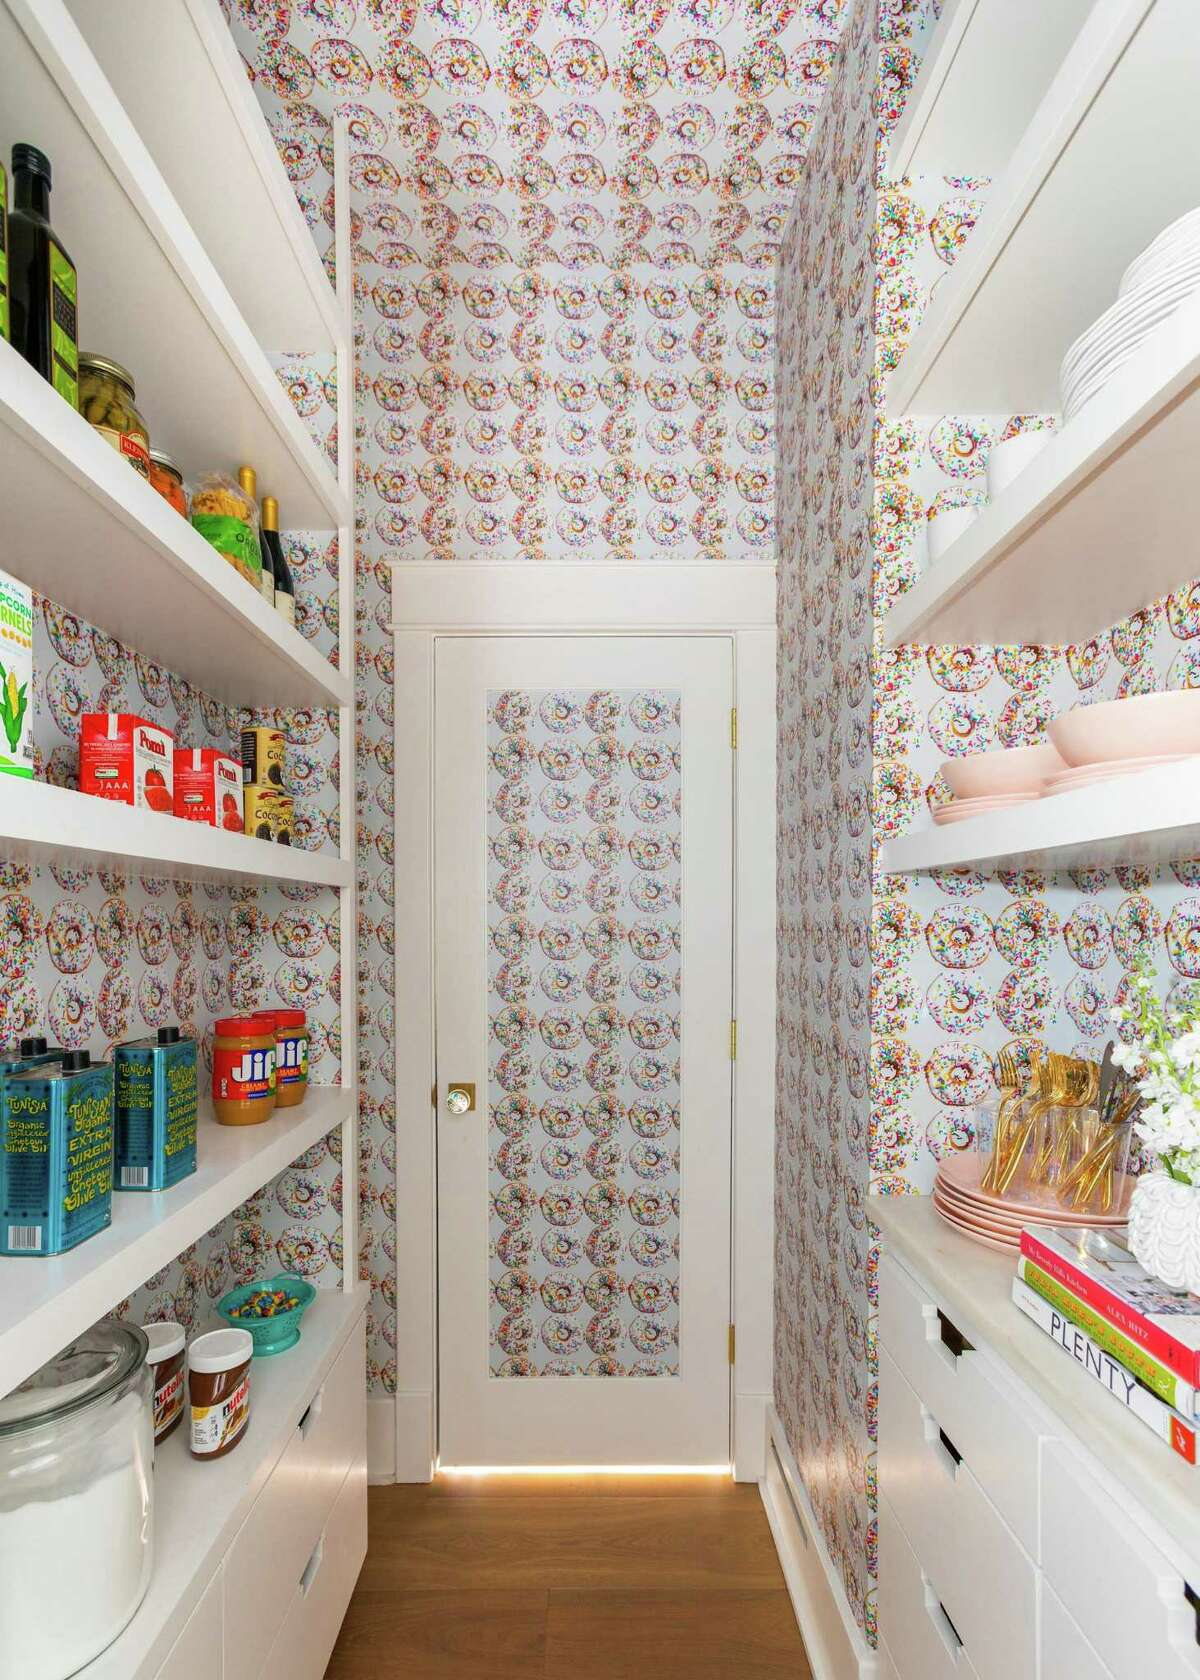 For the pantry in the home of client Julie Soefer, interior designer Courtnay Tartt Elias of Creative Tonic Design installed wallpaper of doughnuts with sprinkles. The wallpaper is custom made from a photo taken by Soefer, a professional photographer.